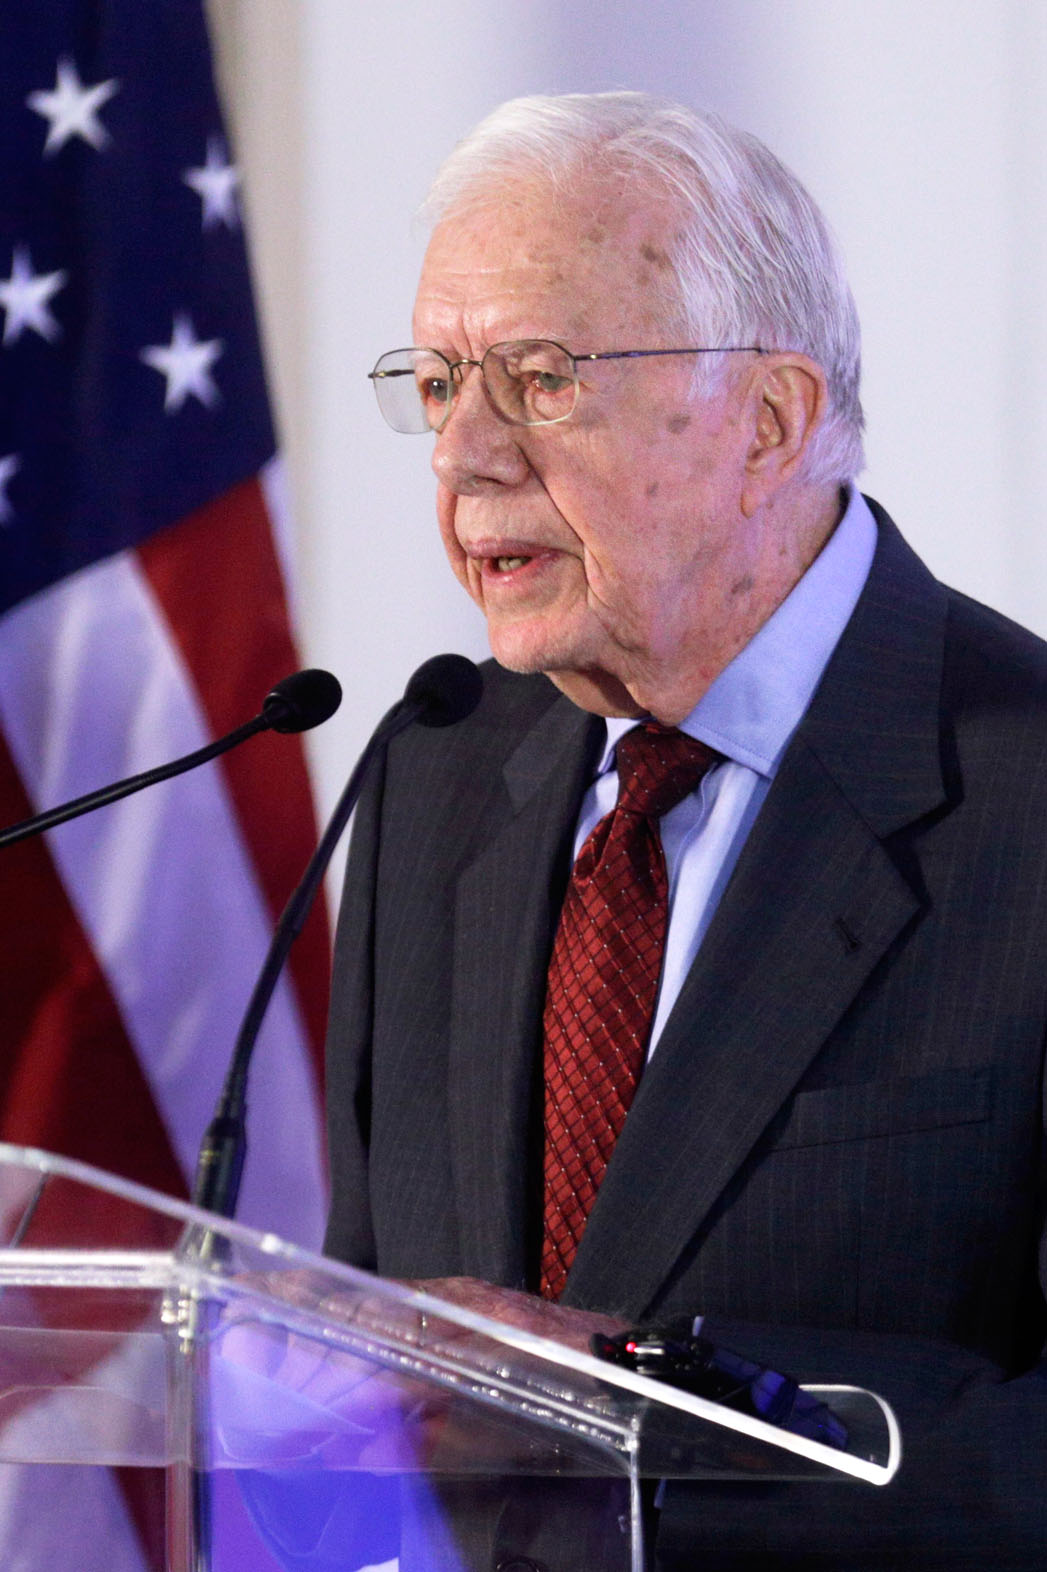 Jimmy Carter Speaking at Ethical Elections Pact - P 2014